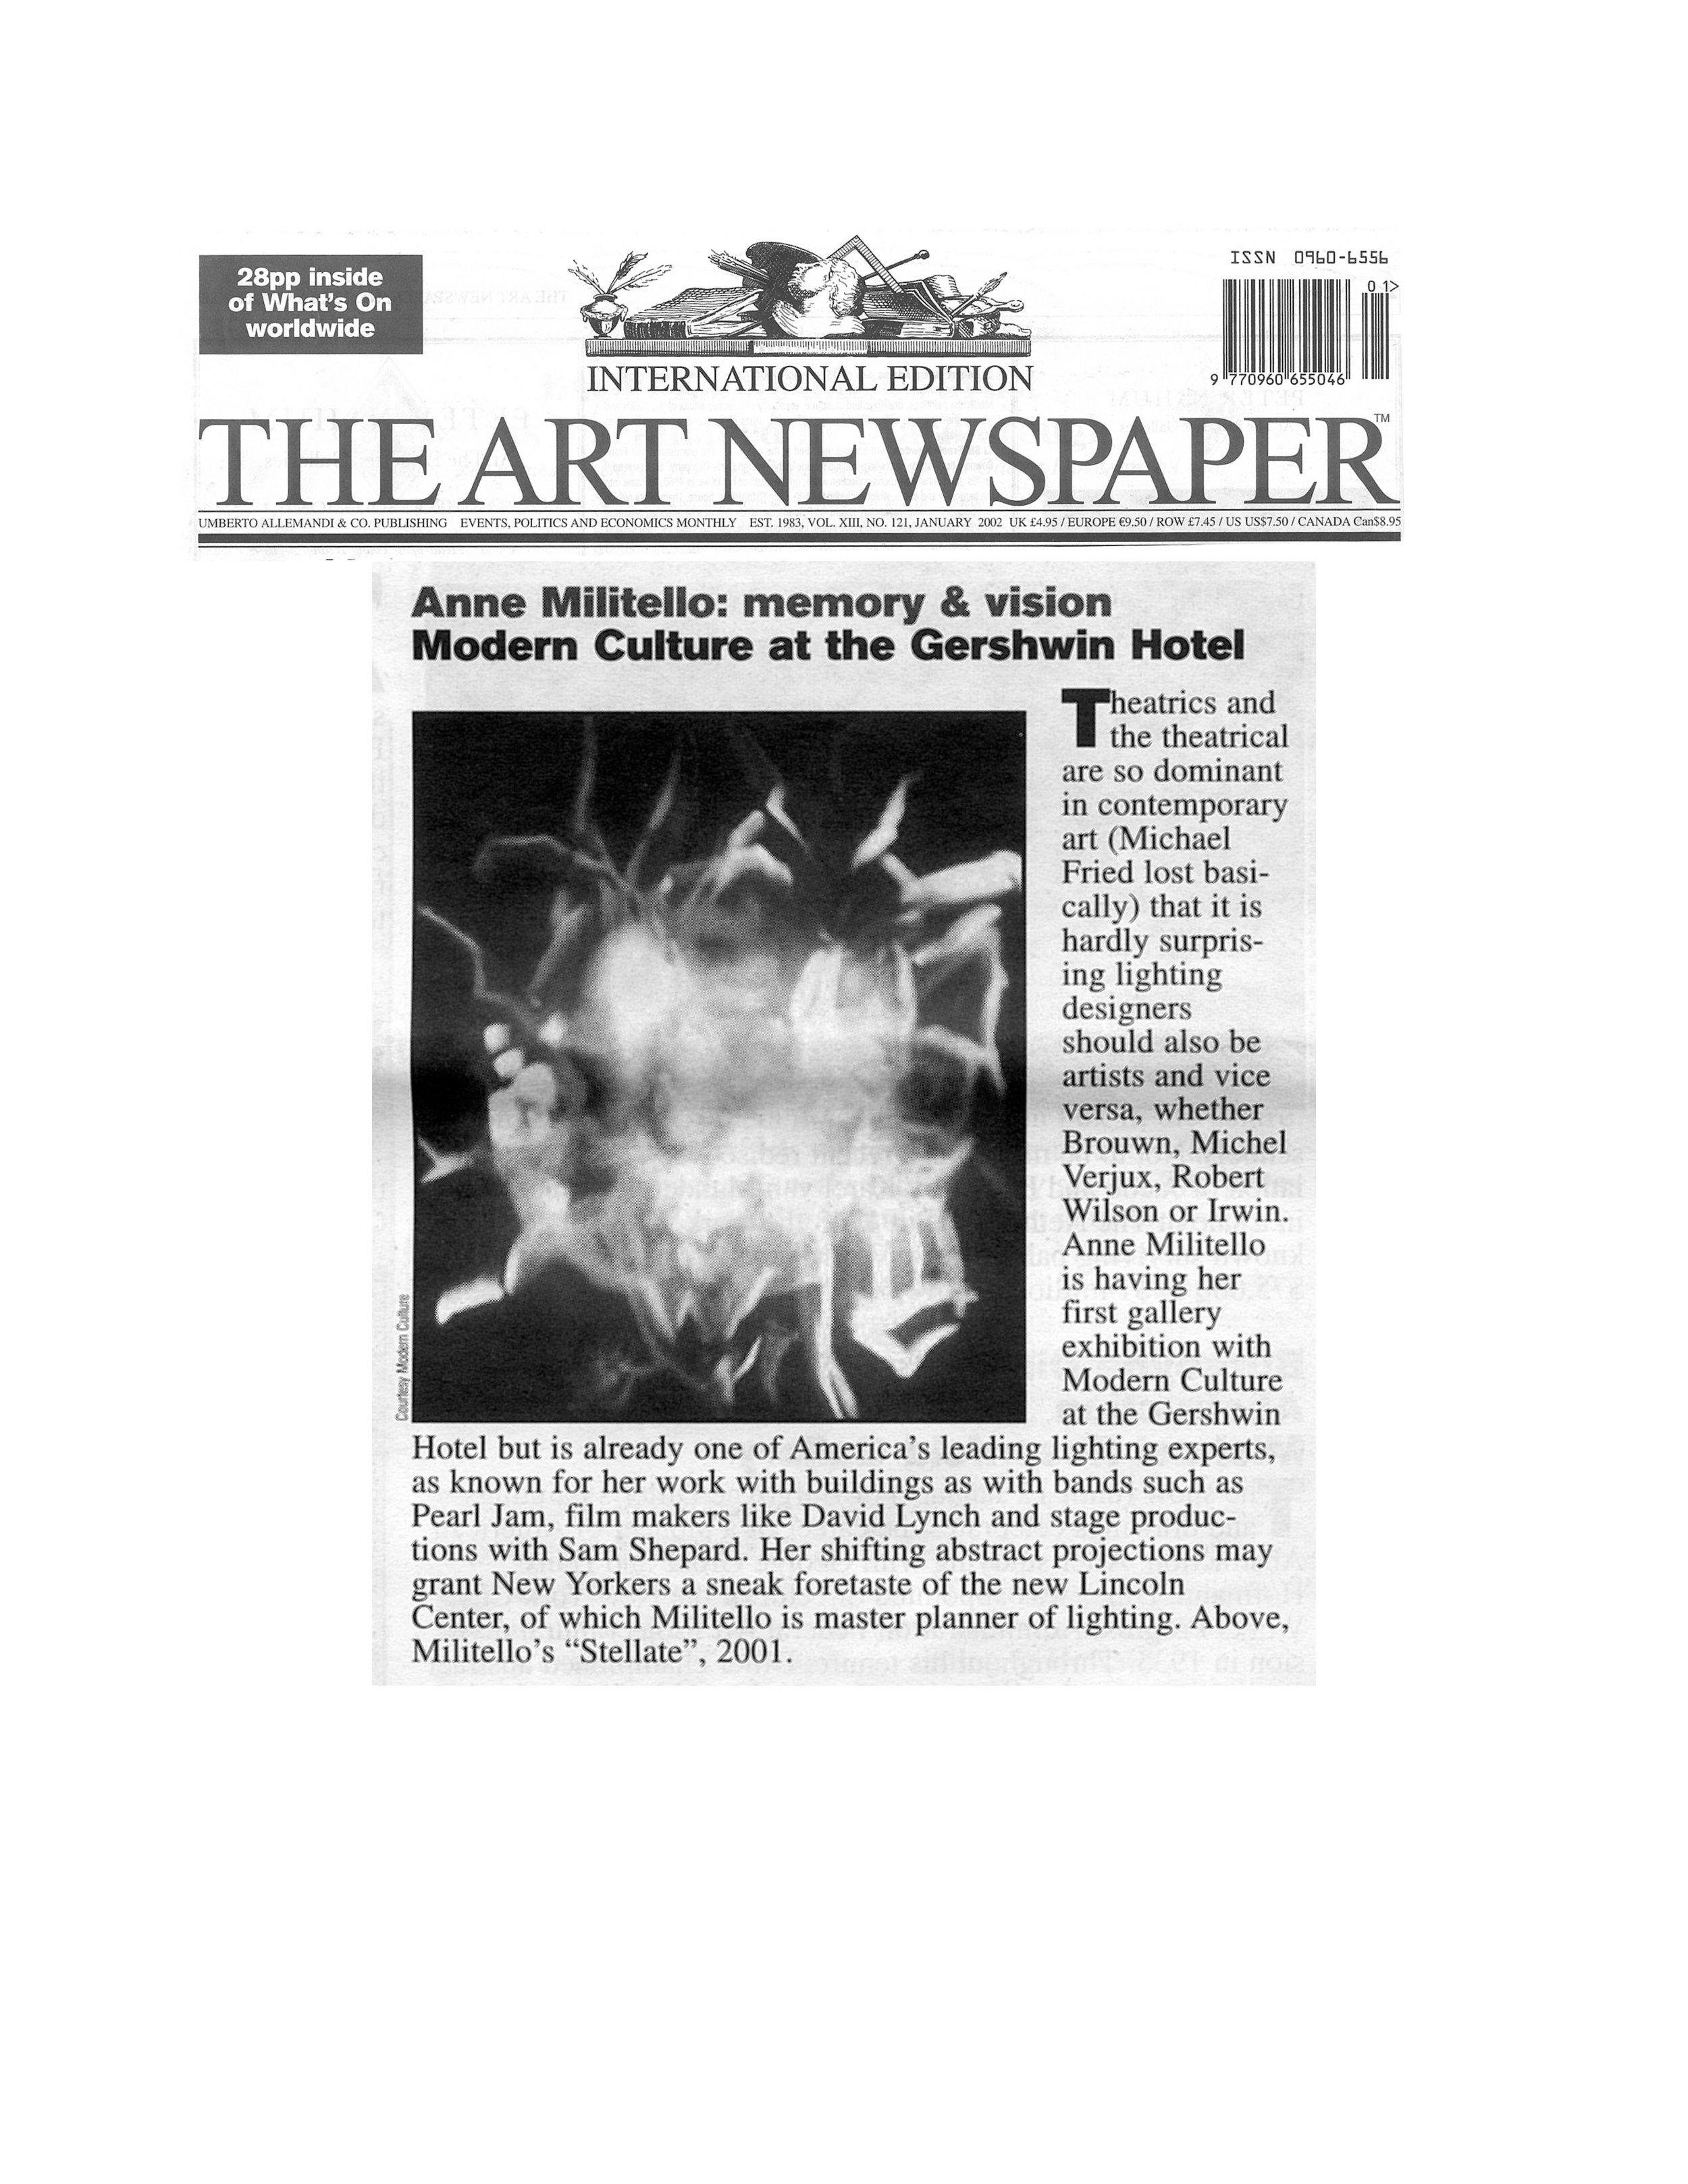 THE ART NEWSPAPER | 2002